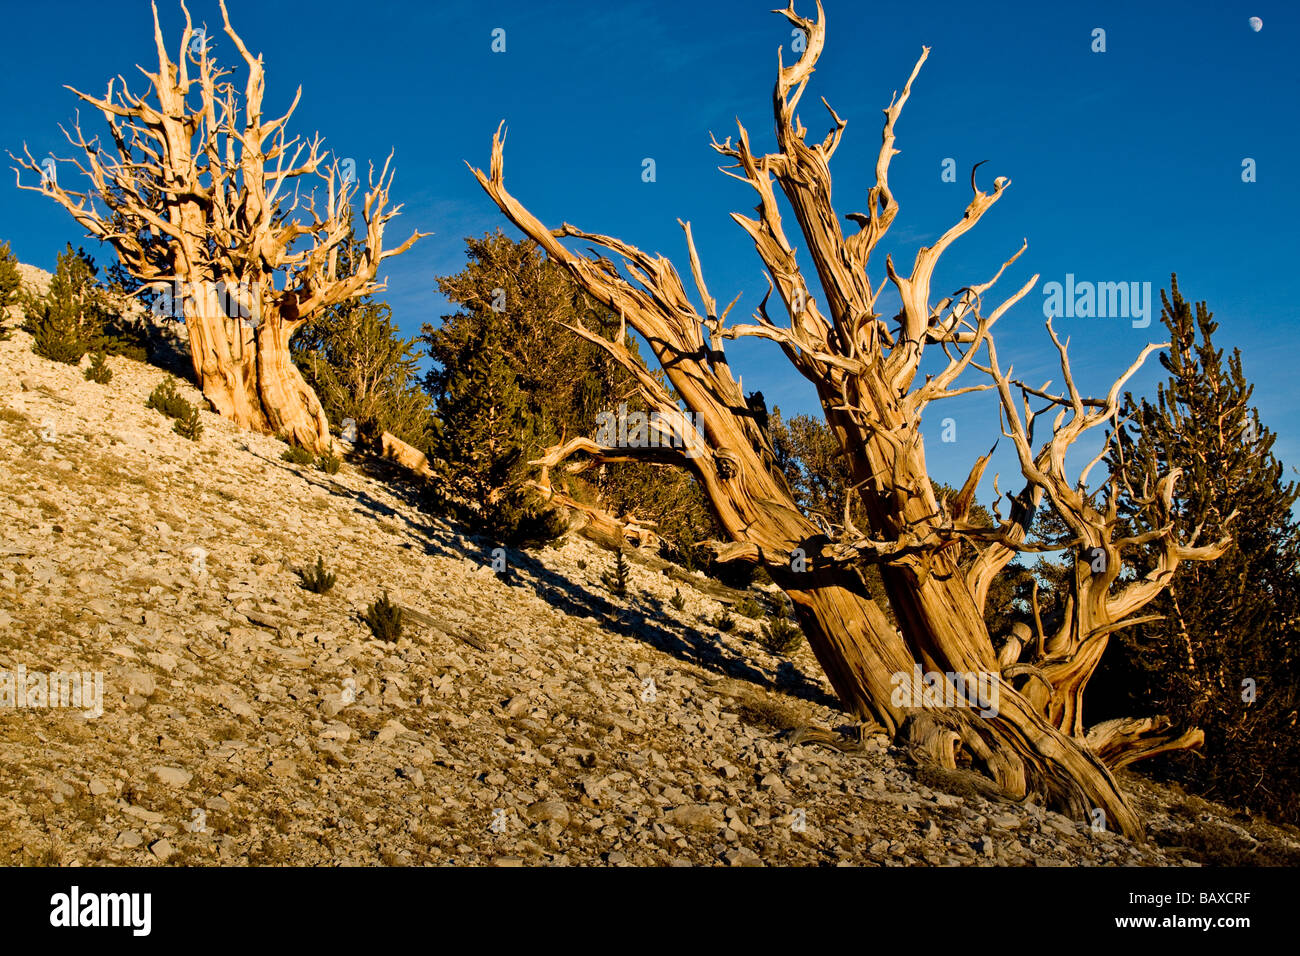 Ancient Bristlecone Pine Trees in the White Mountains of California - Stock Image